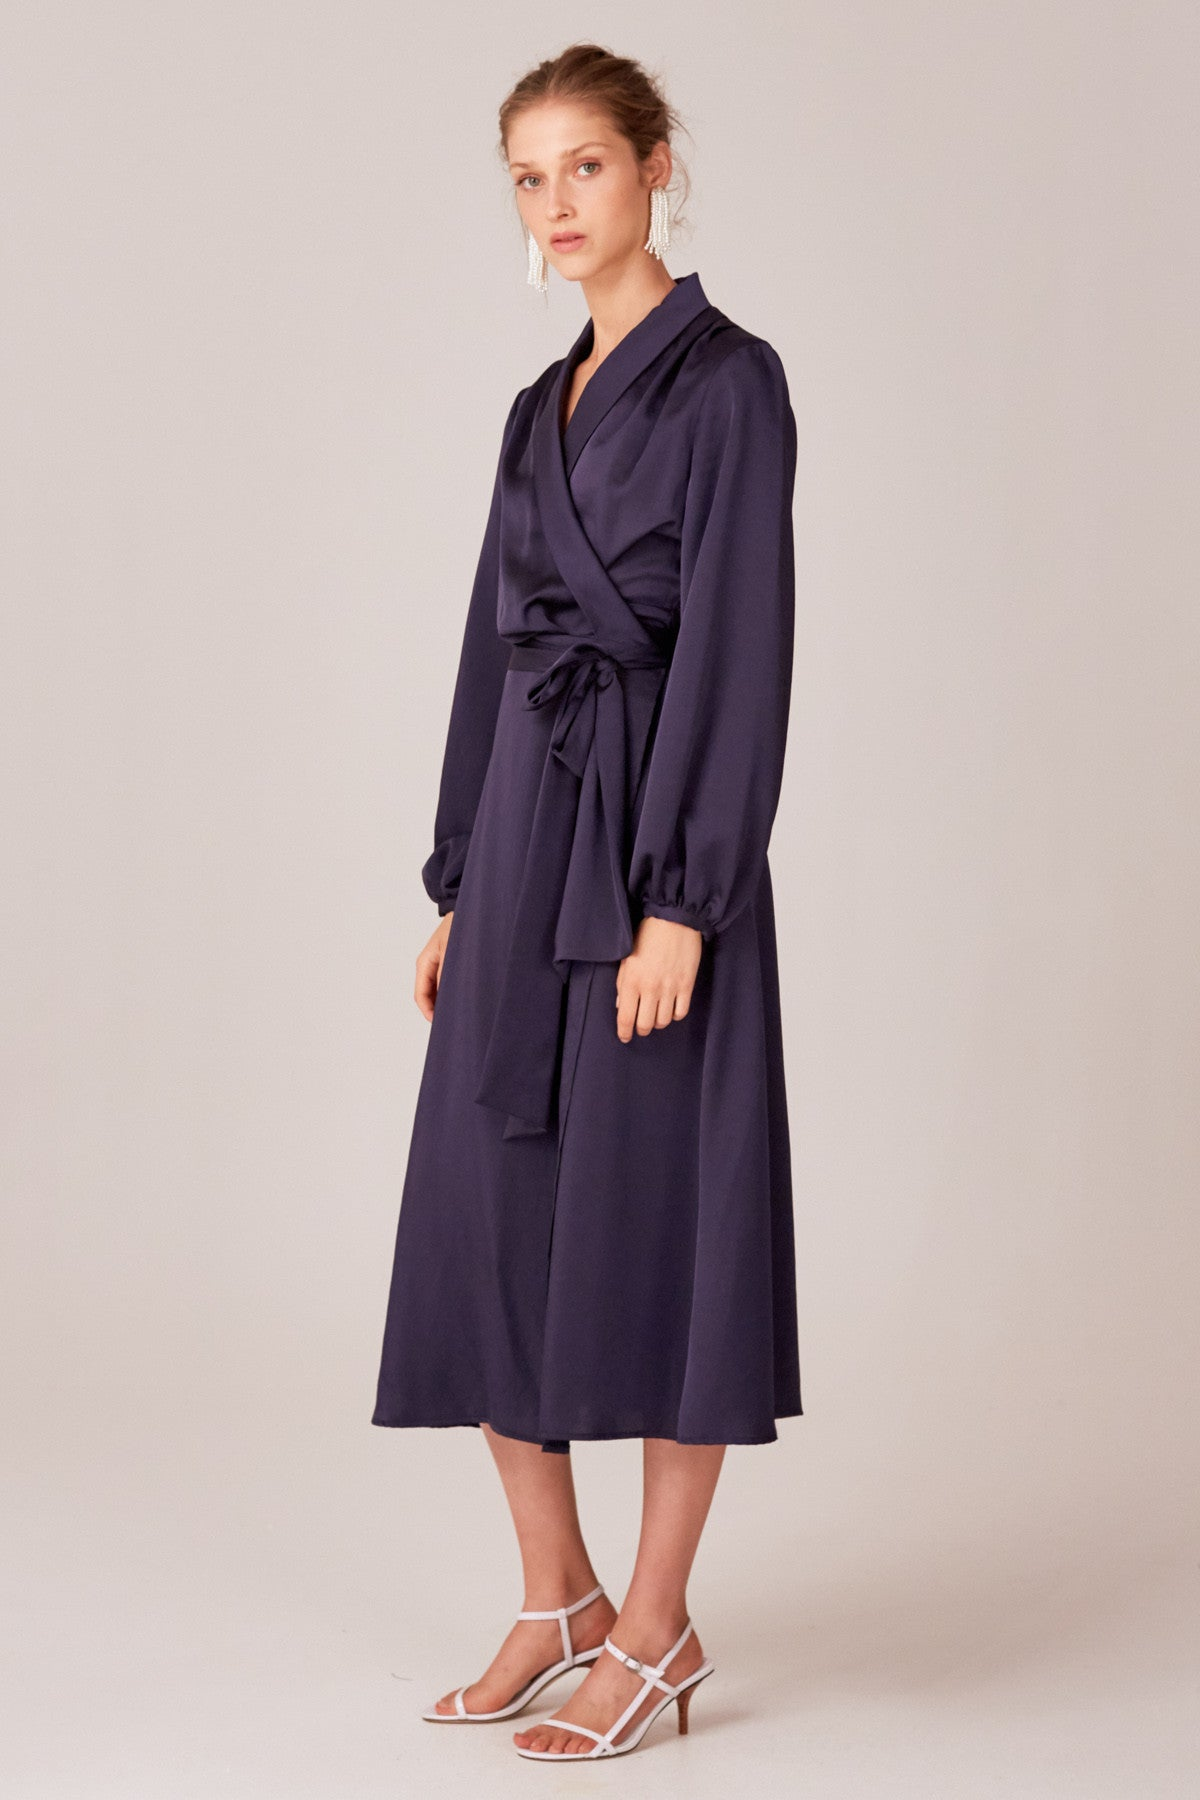 LATE THOUGHTS MIDI DRESS navy